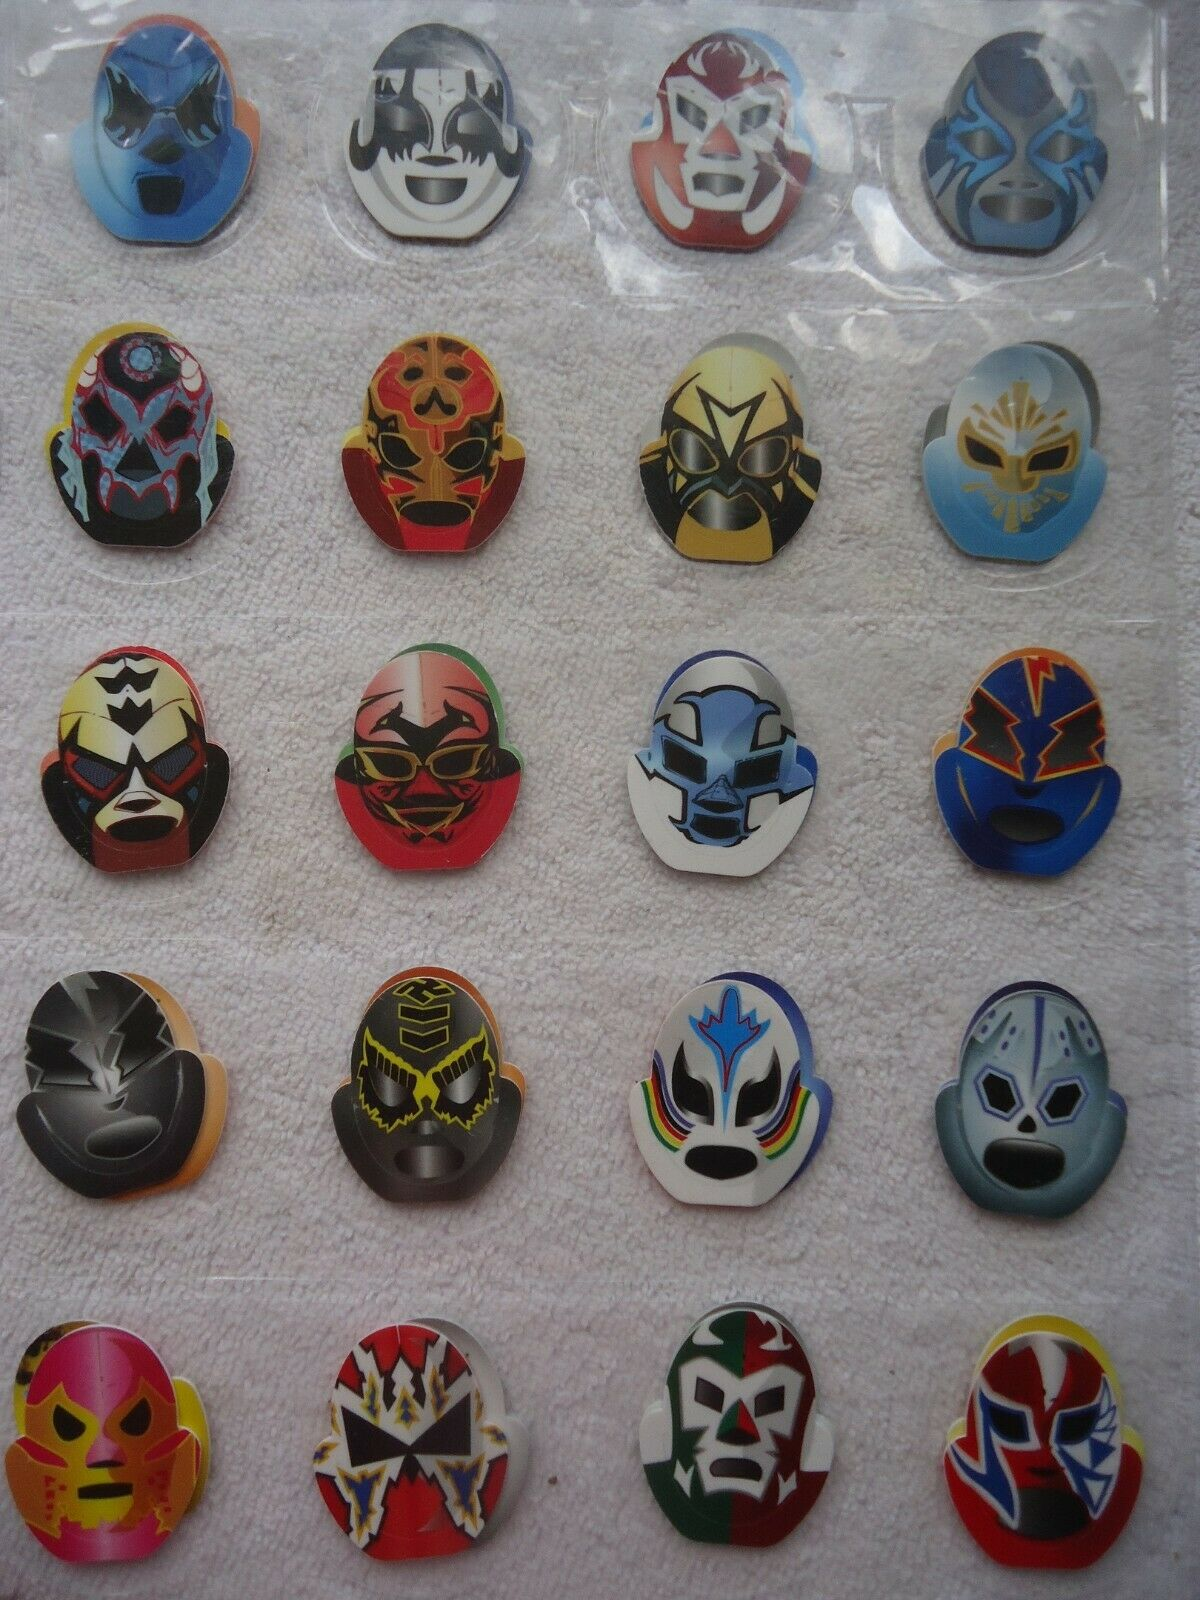 COMPLETE COLLECTION OF 50 TAZOS POGS WRESTLING MASKS